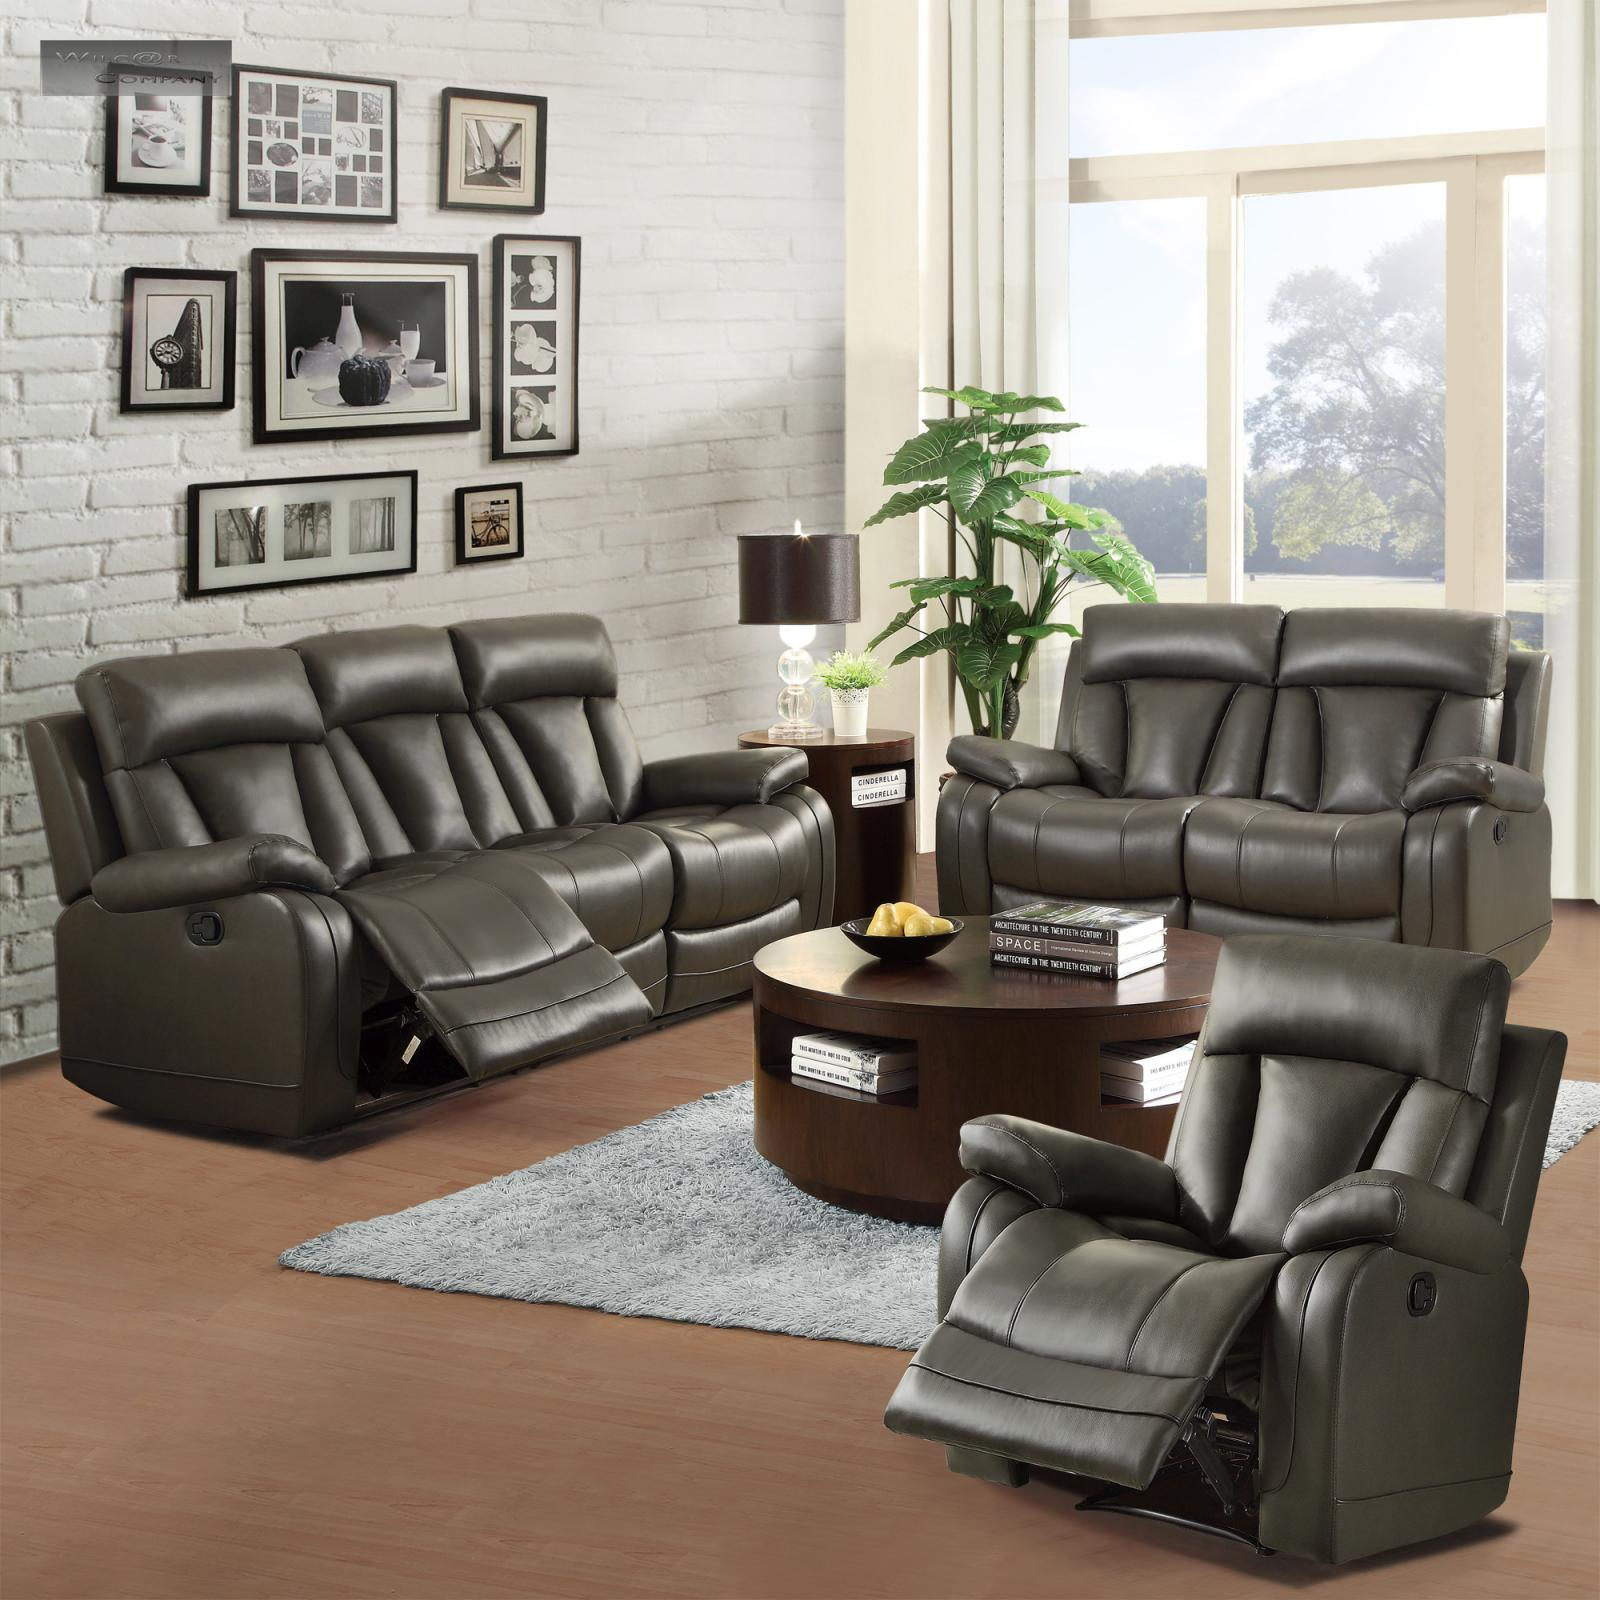 Black Living Room Furniture: NEW Black Leather Recliner Lazy Chair Furniture Living